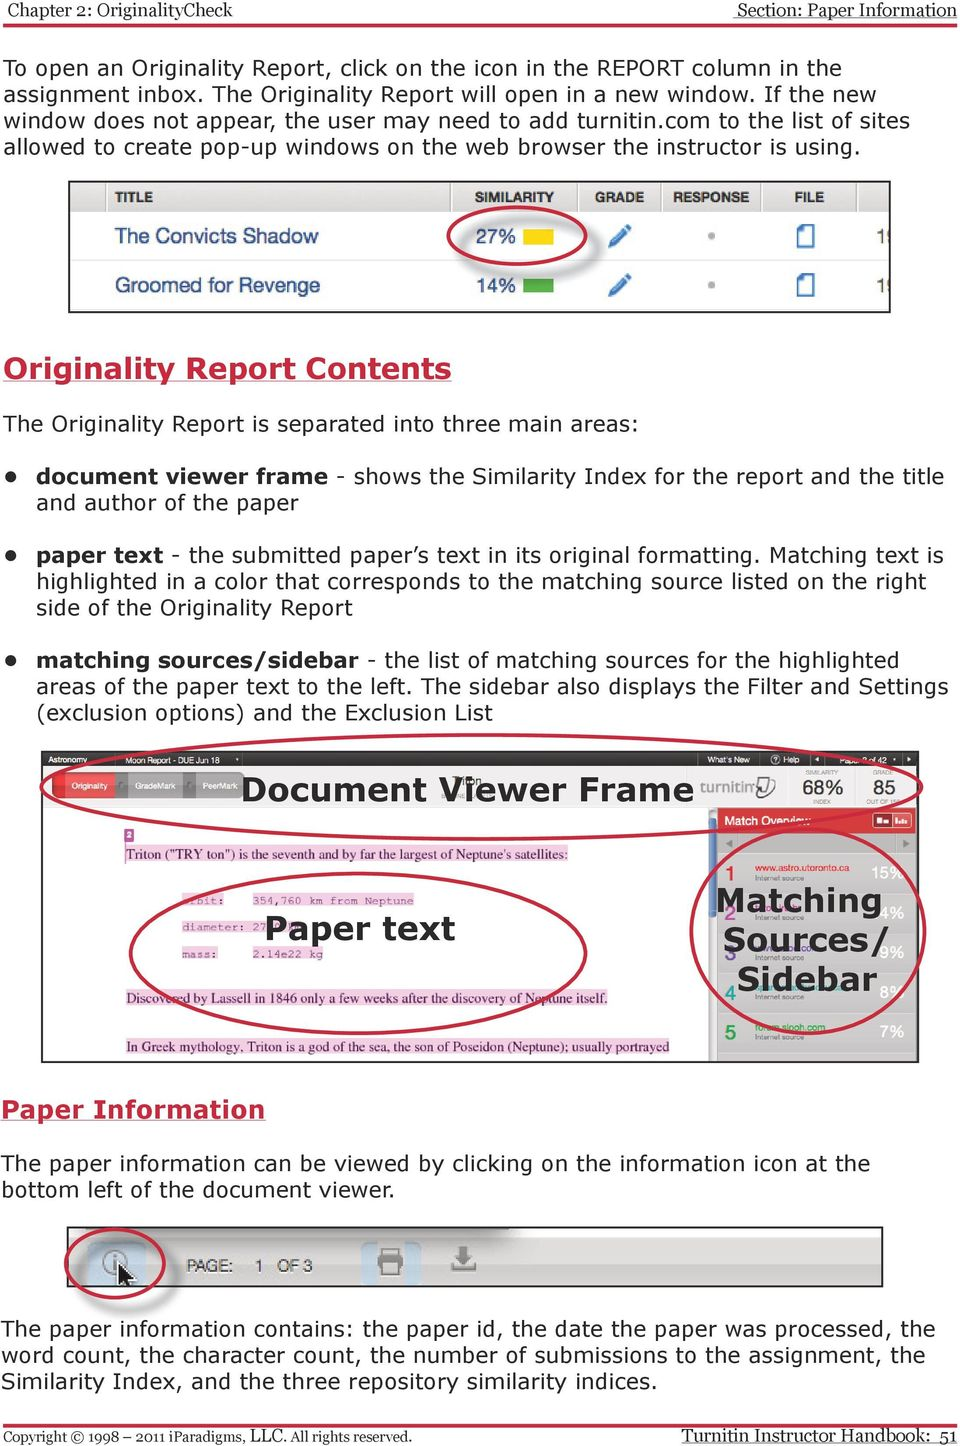 Originality Report Contents The Originality Report is separated into three main areas: document viewer frame - shows the Similarity Index for the report and the title and author of the paper paper